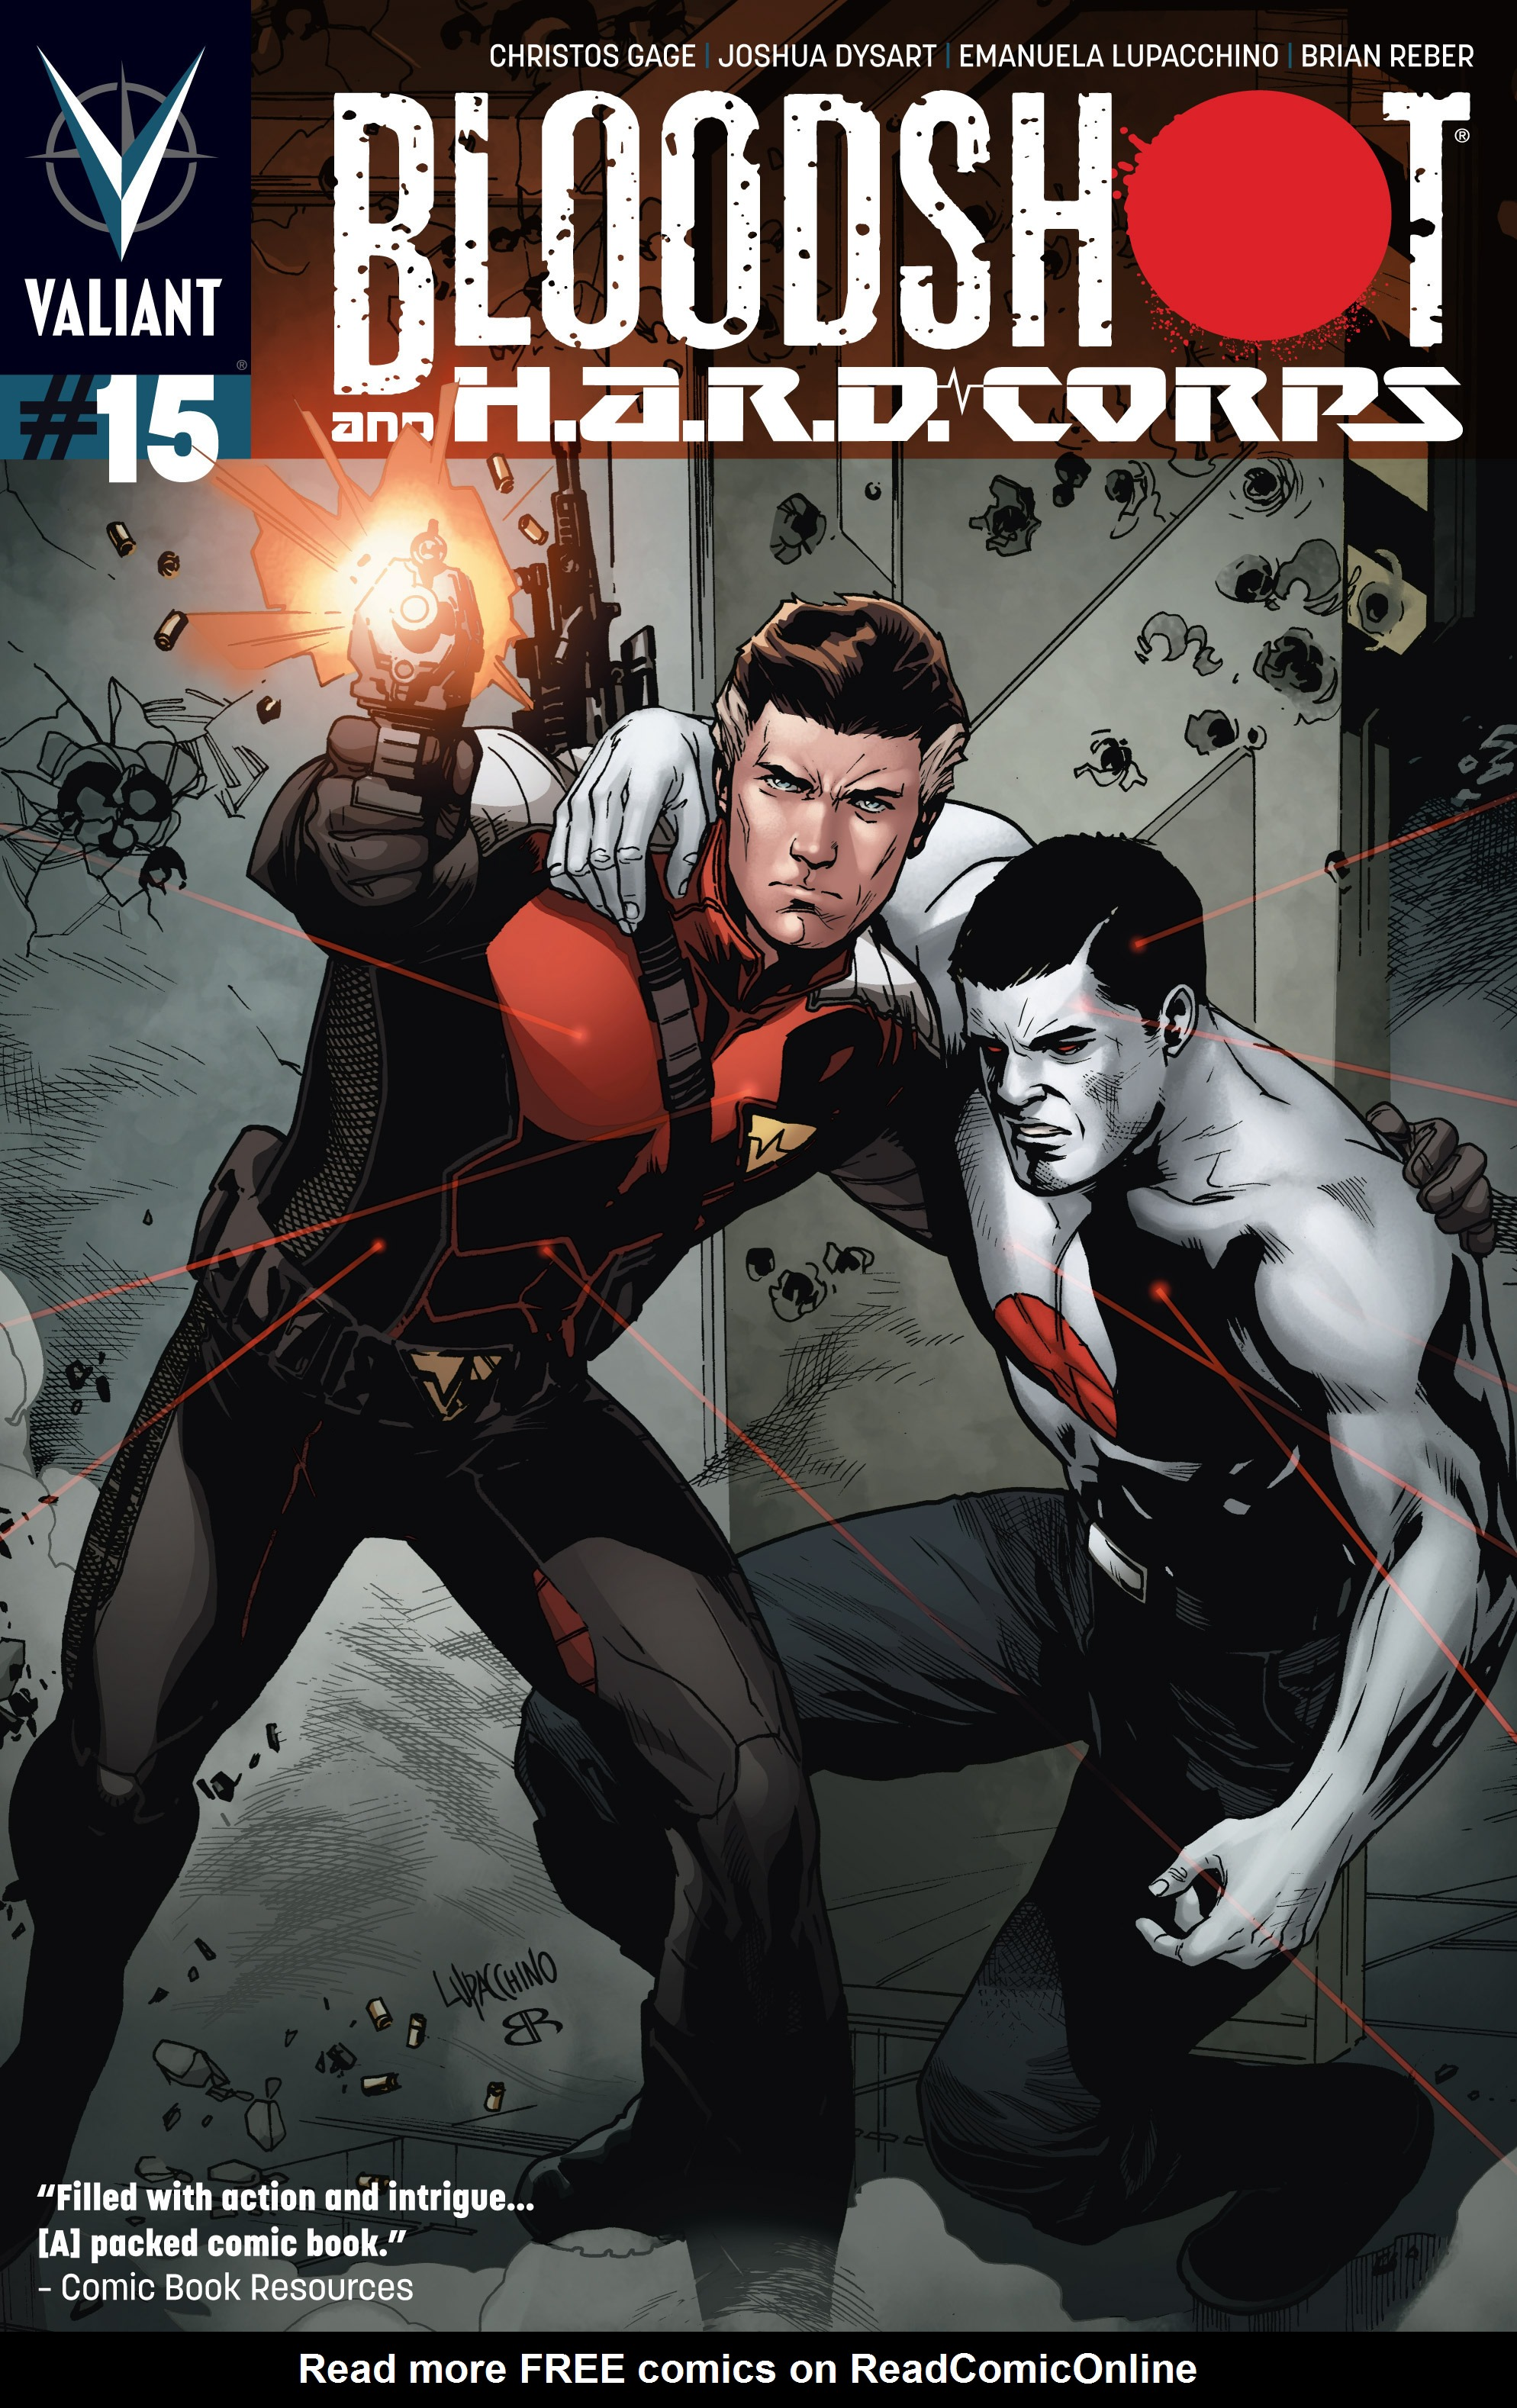 Read online Bloodshot and H.A.R.D.Corps comic -  Issue # TPB 4 - 30